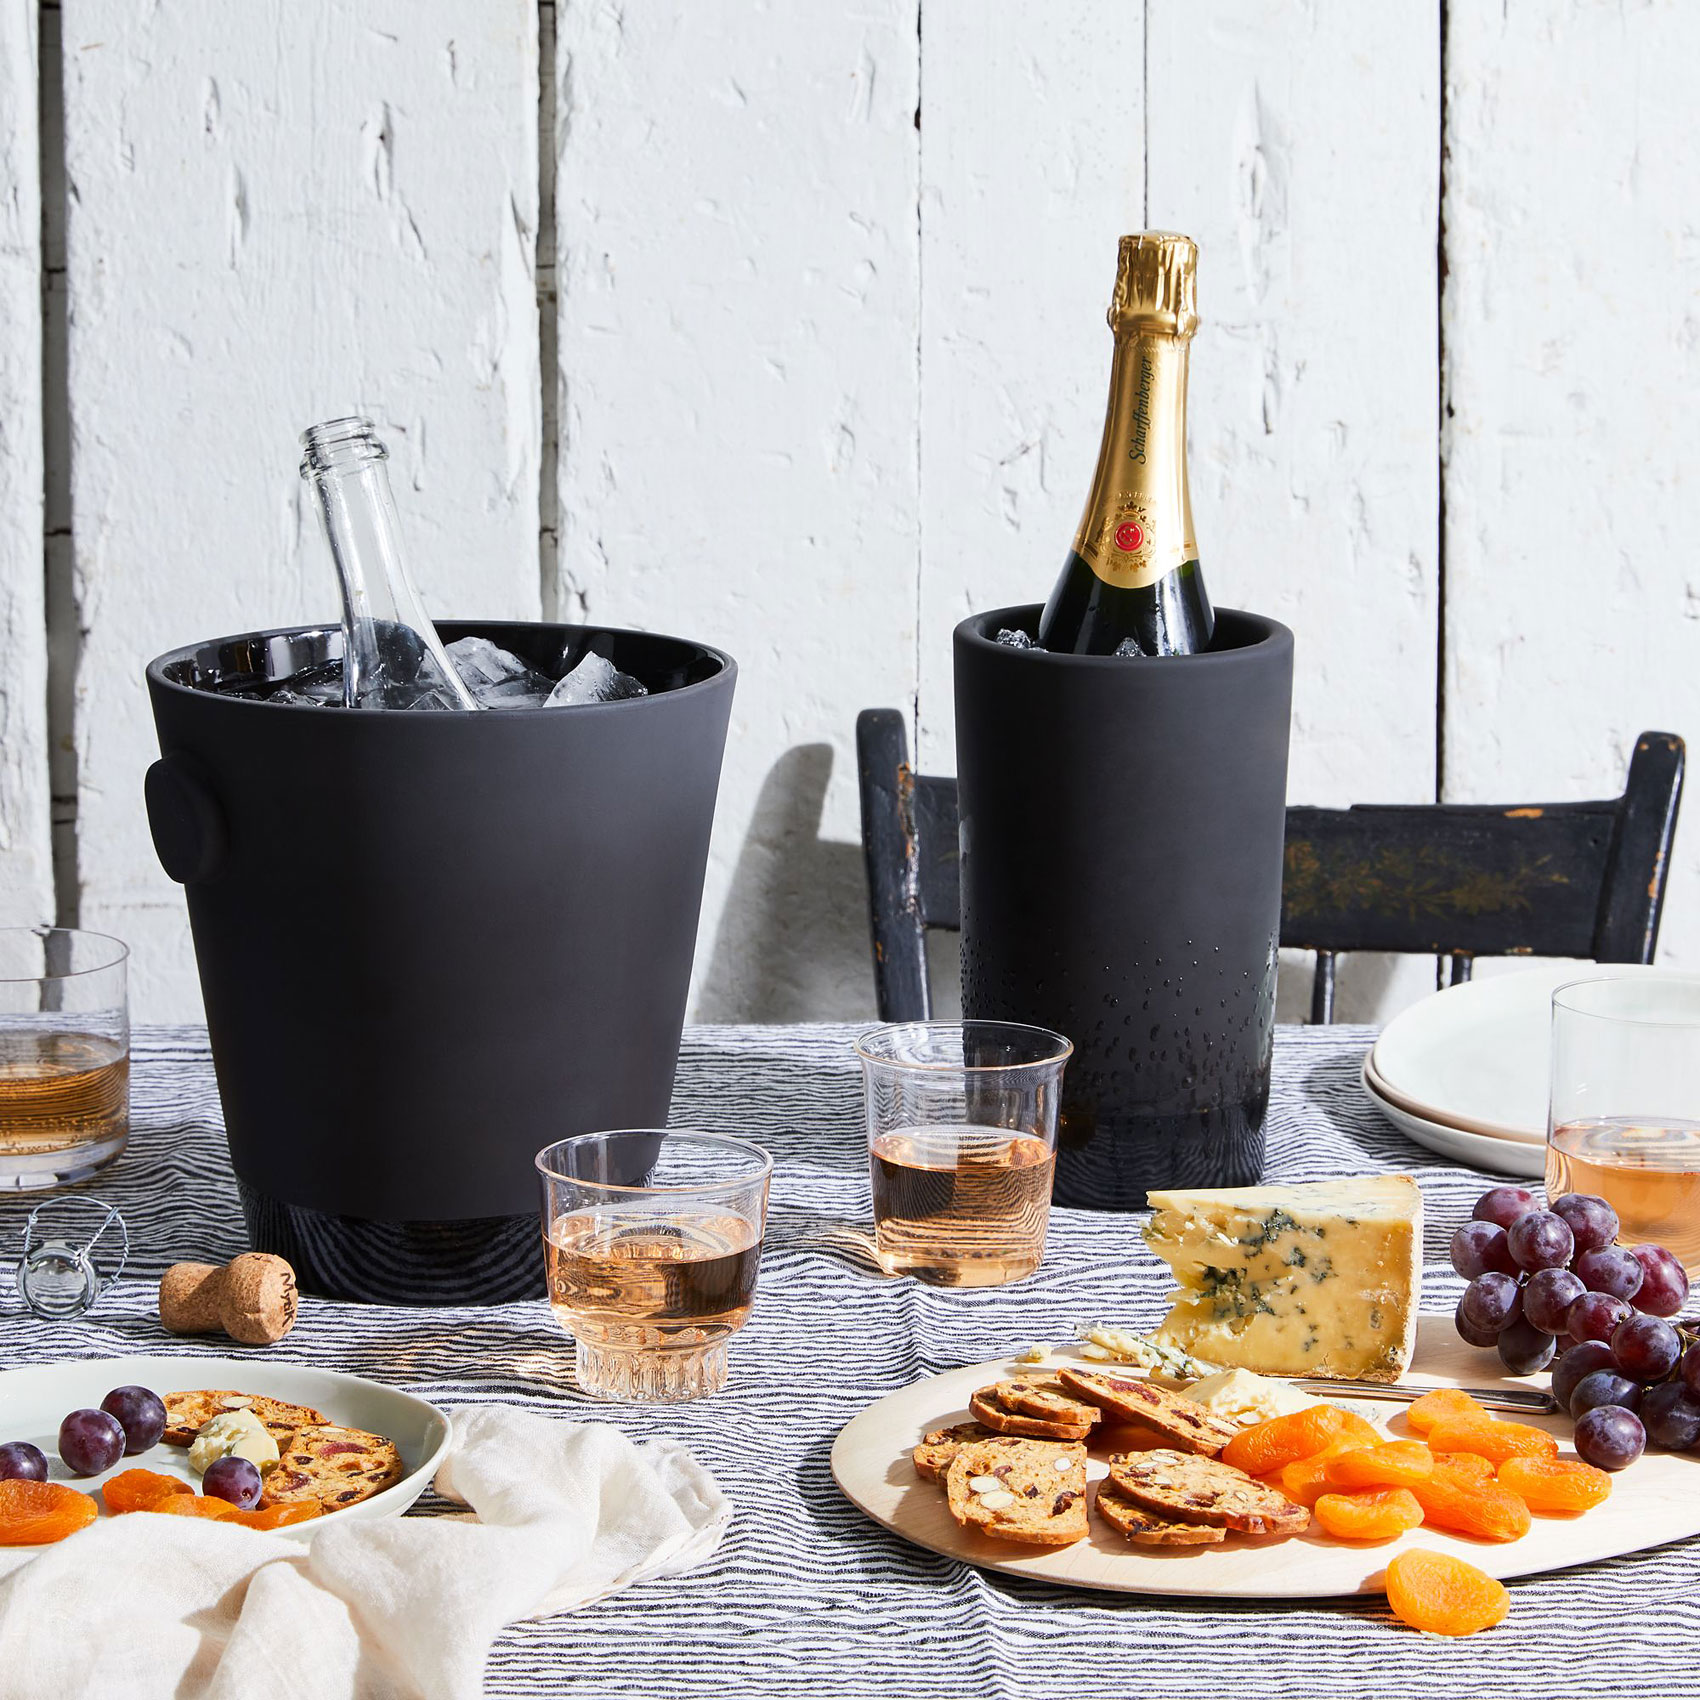 magisso_cooling-black-ceramic-wine-and-champagne-cooler_ty-mecham_food52